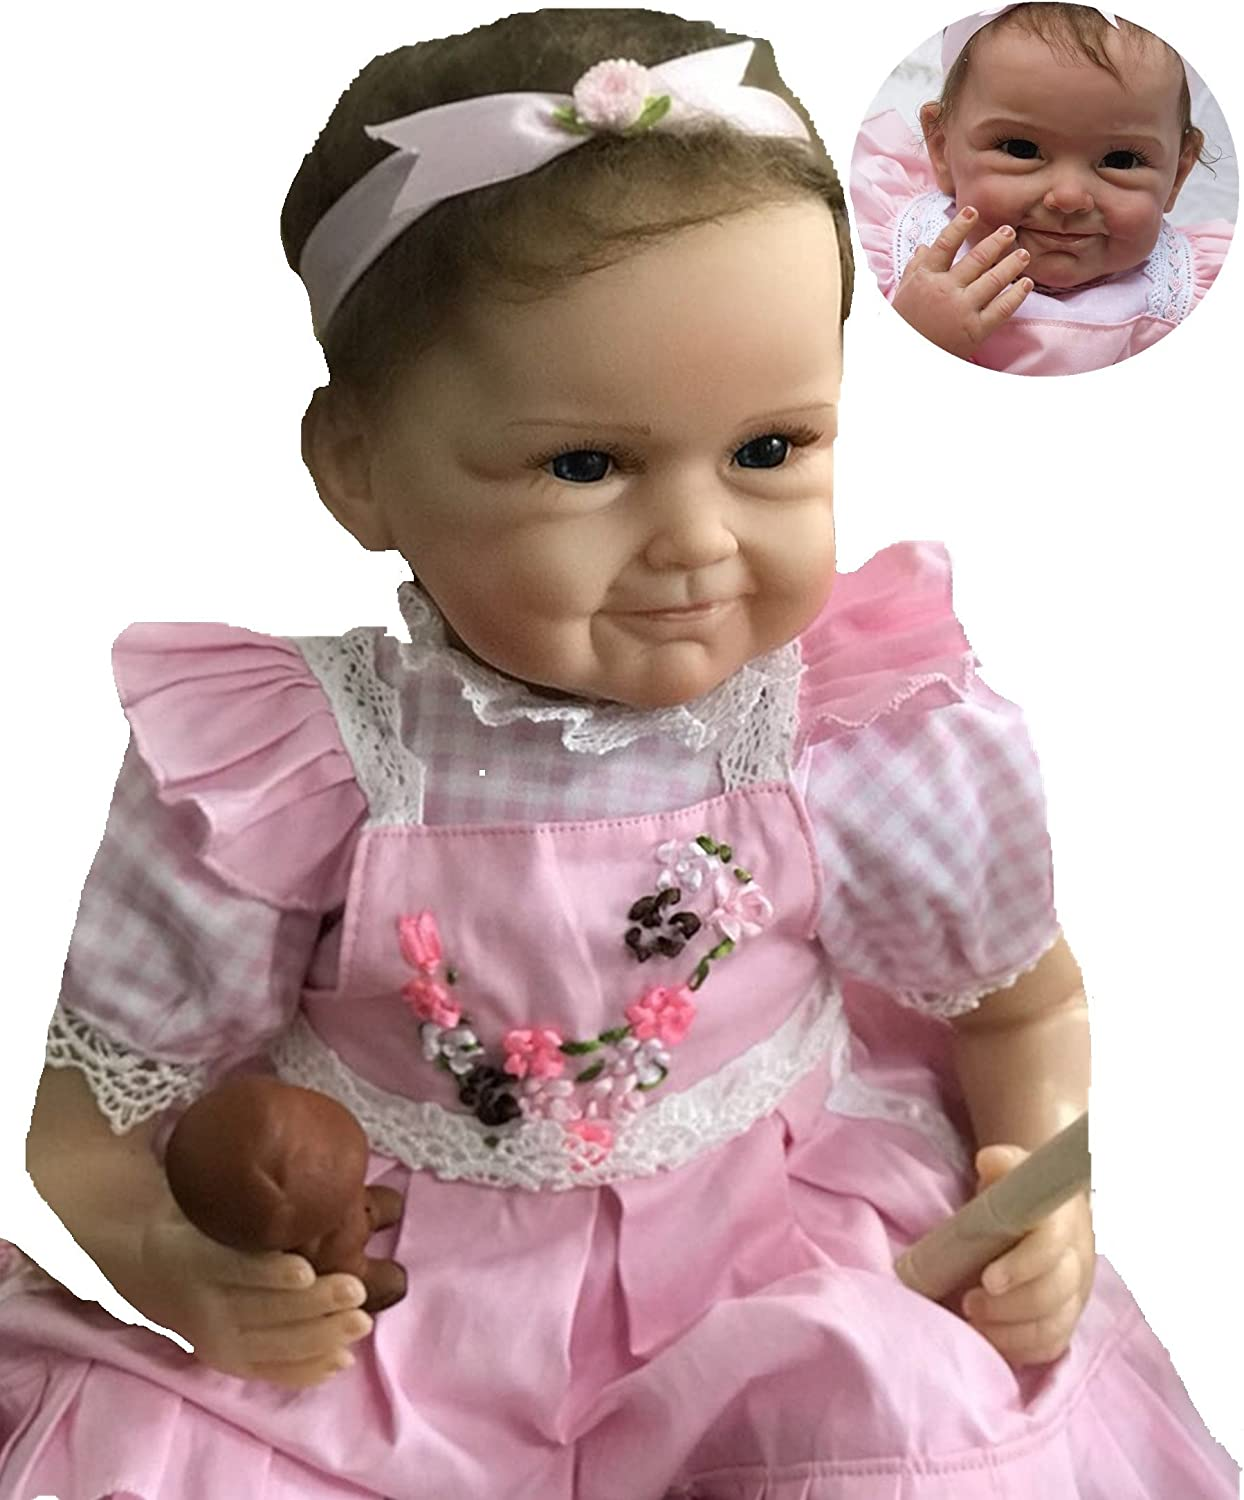 Lifelike Reborn Baby Dolls Girl 22 inches Real Looking Soft Vinyl Silicone Weighted Body Handmade Eyes Open Pink Dress